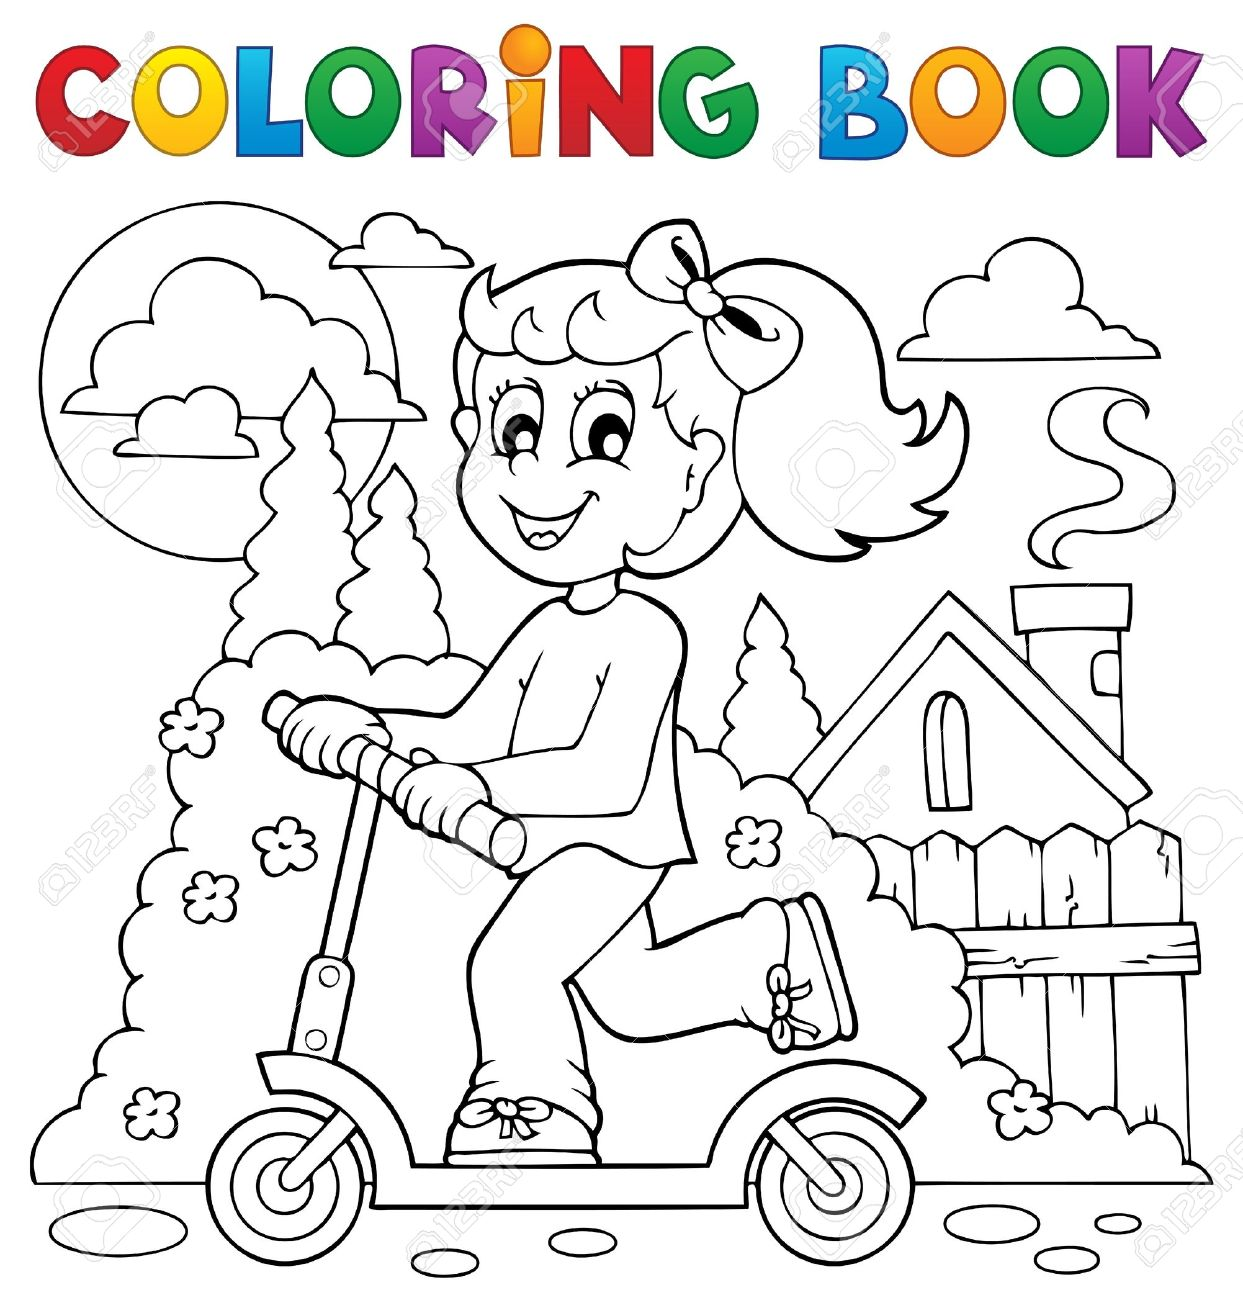 coloring book kids play theme royalty free cliparts vectors and - Kids Colouring Books